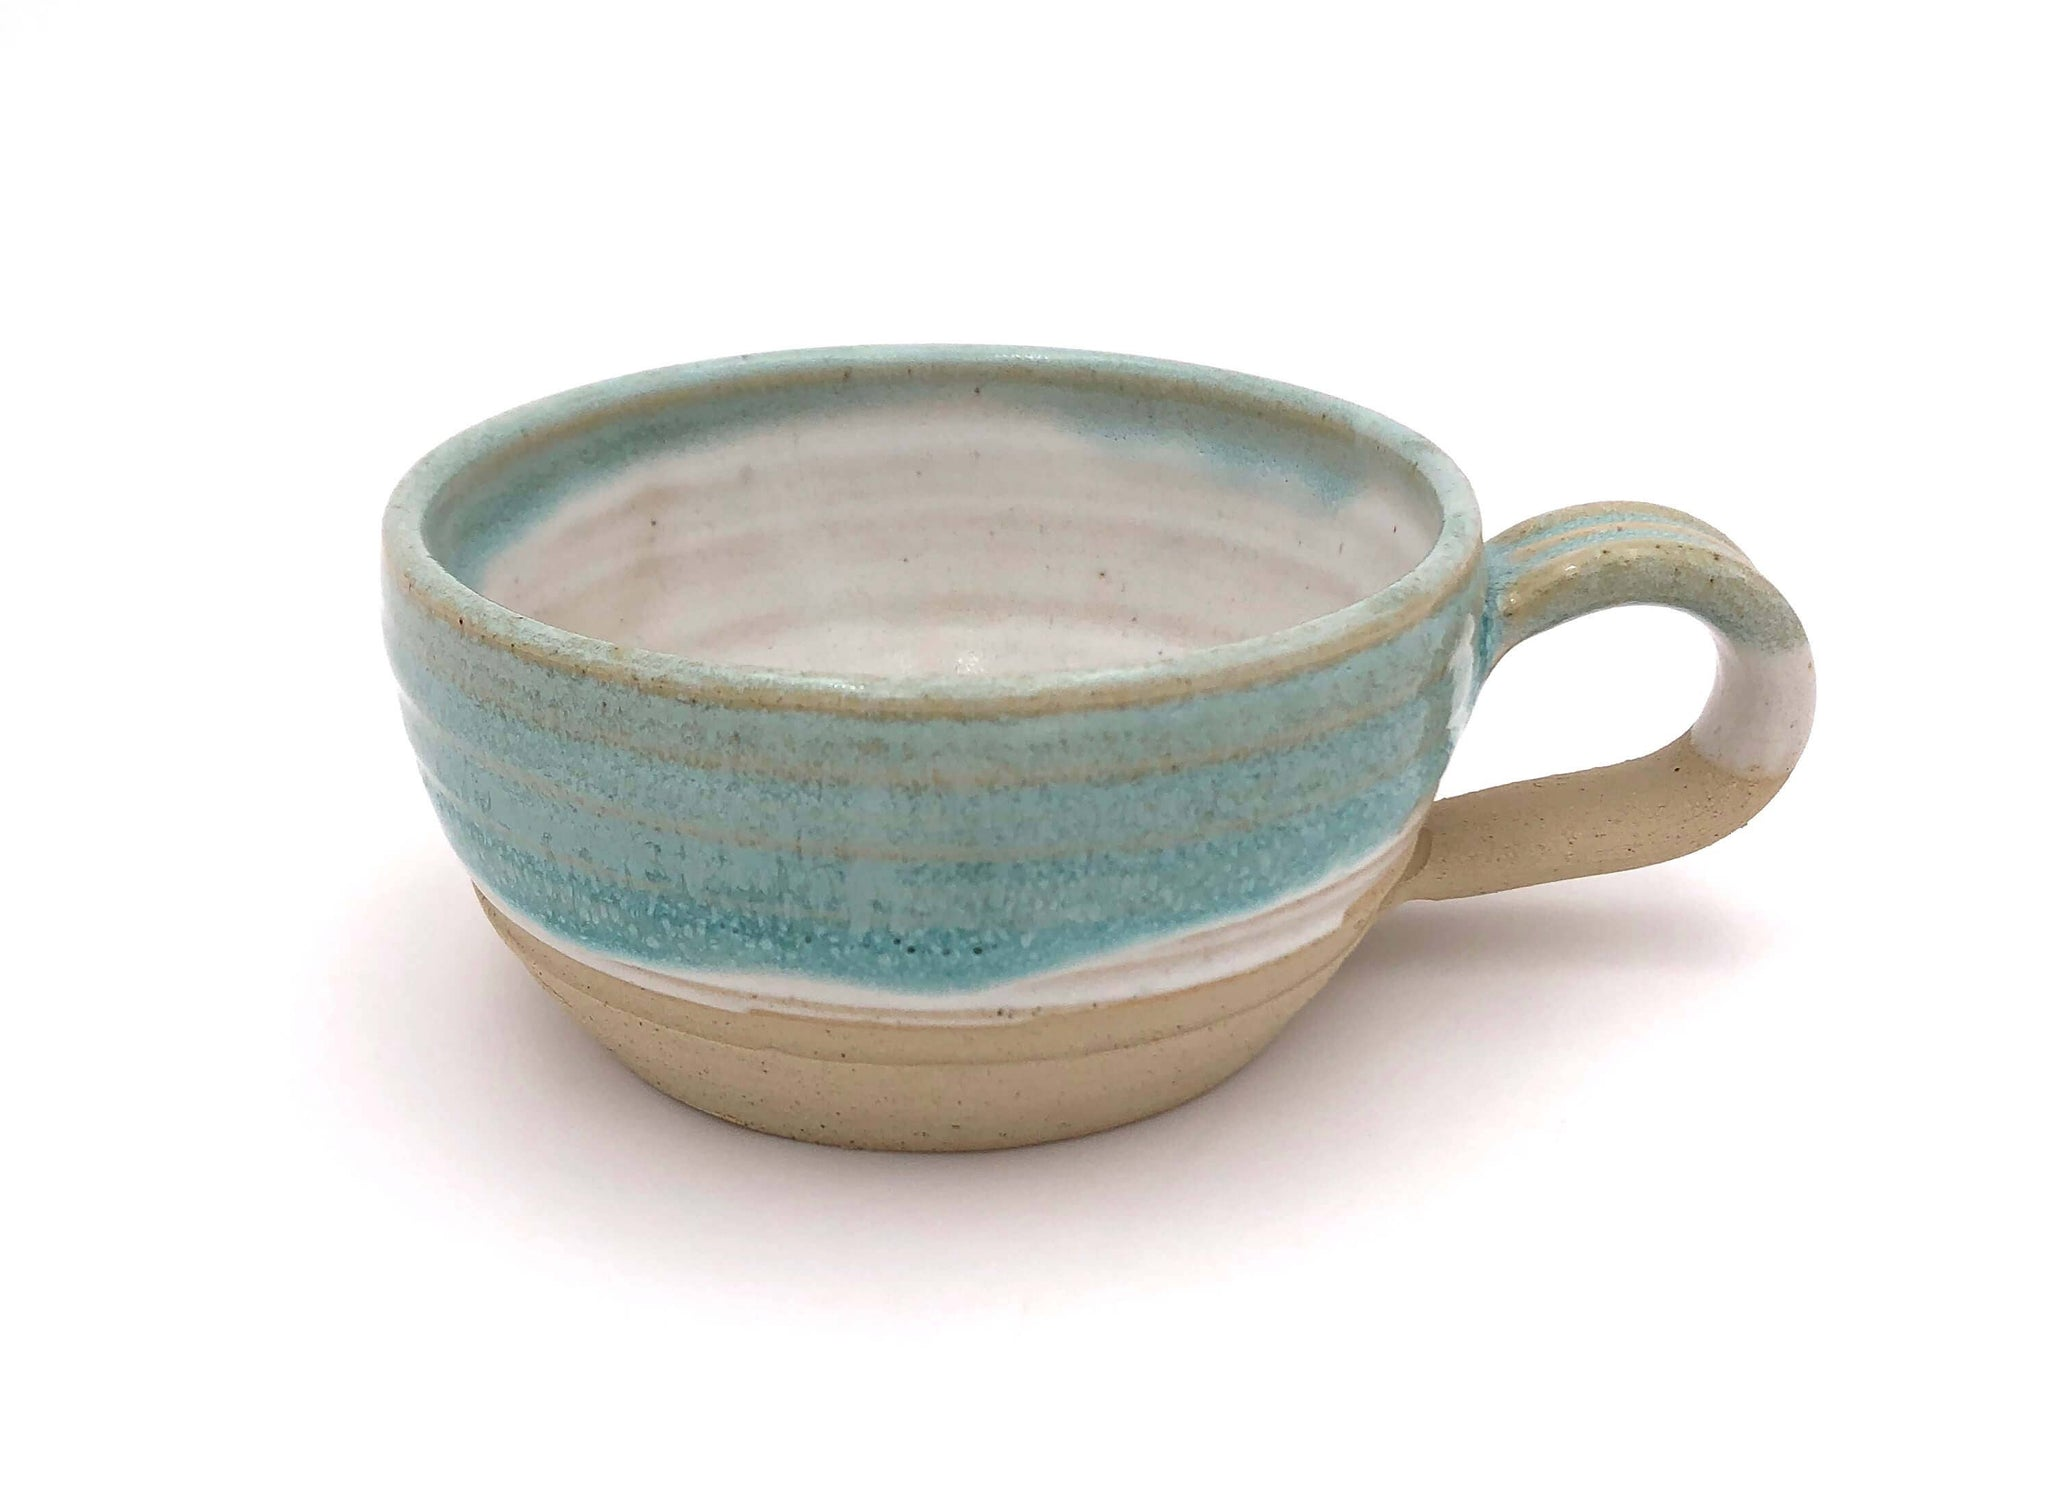 Pottery, handmade - Soup Mug - Good World Goods